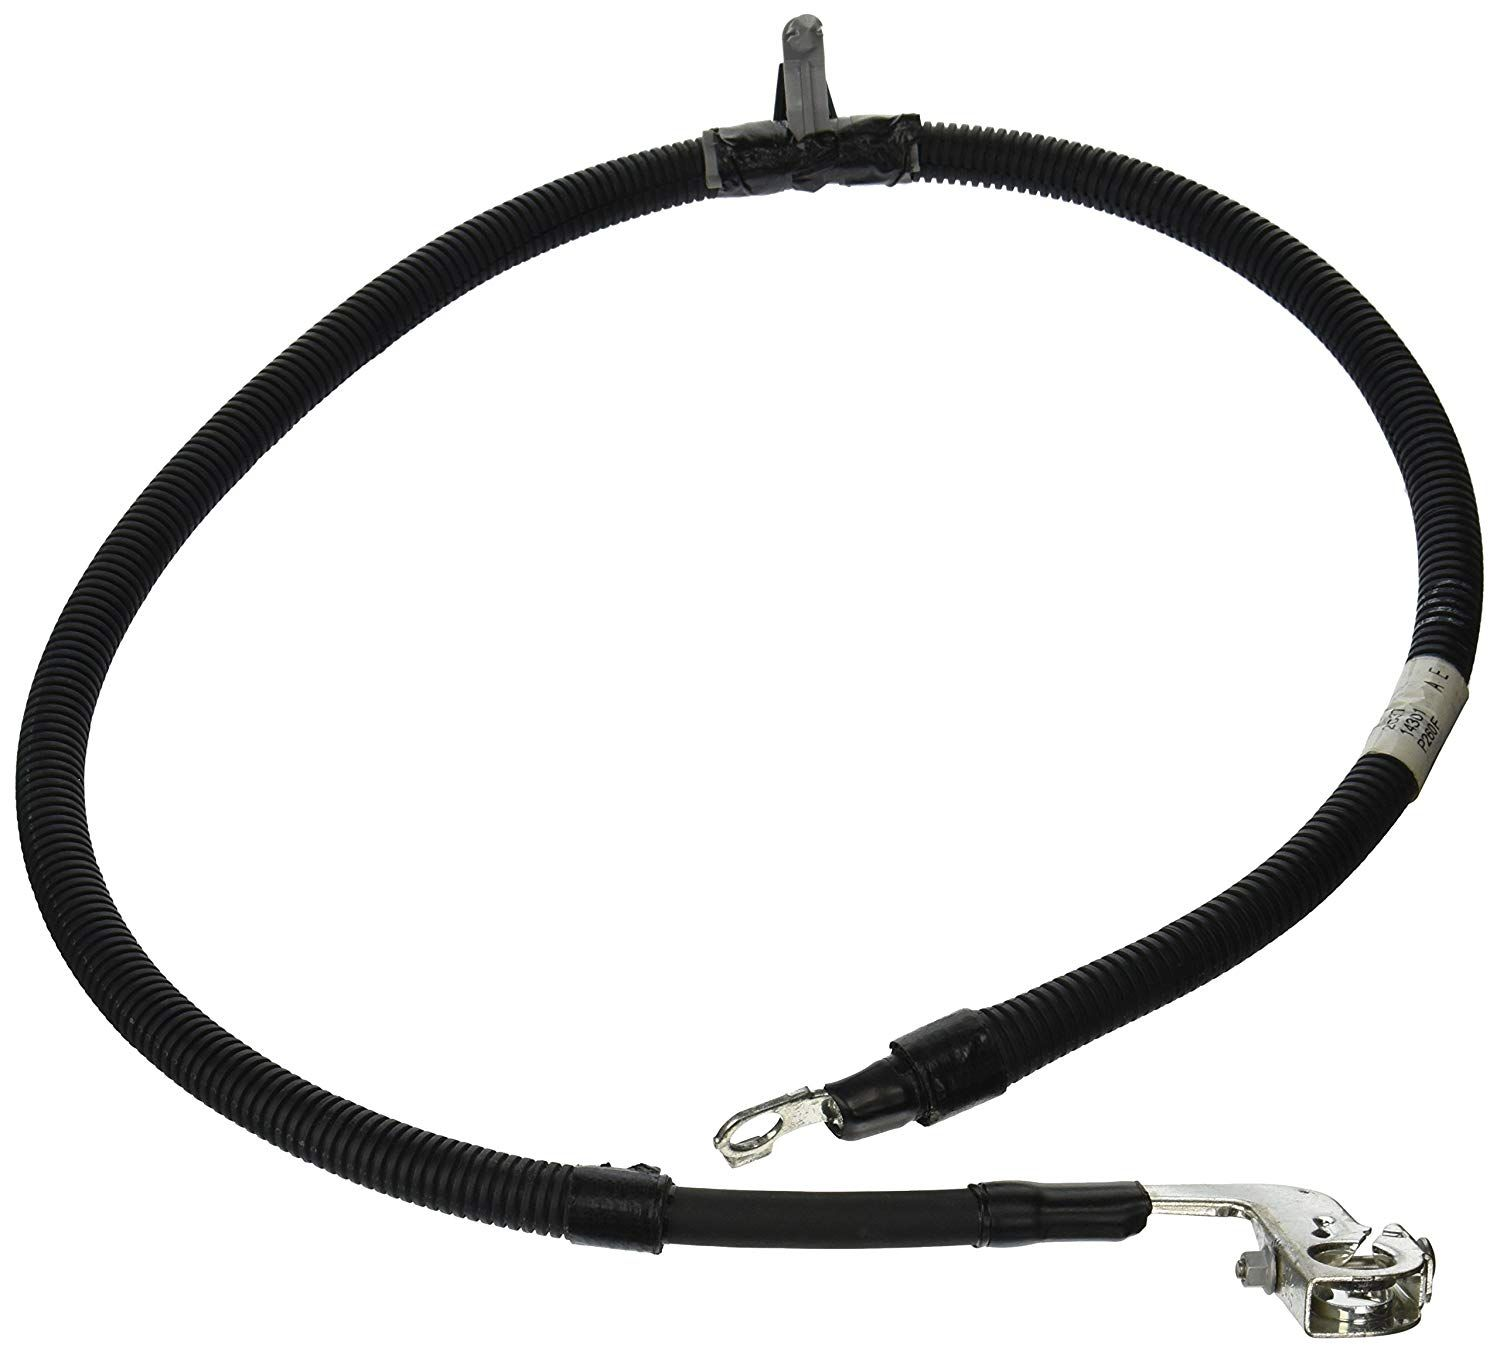 Spartan Power Black 6 Foot 2 AWG Battery Cable Negative Only